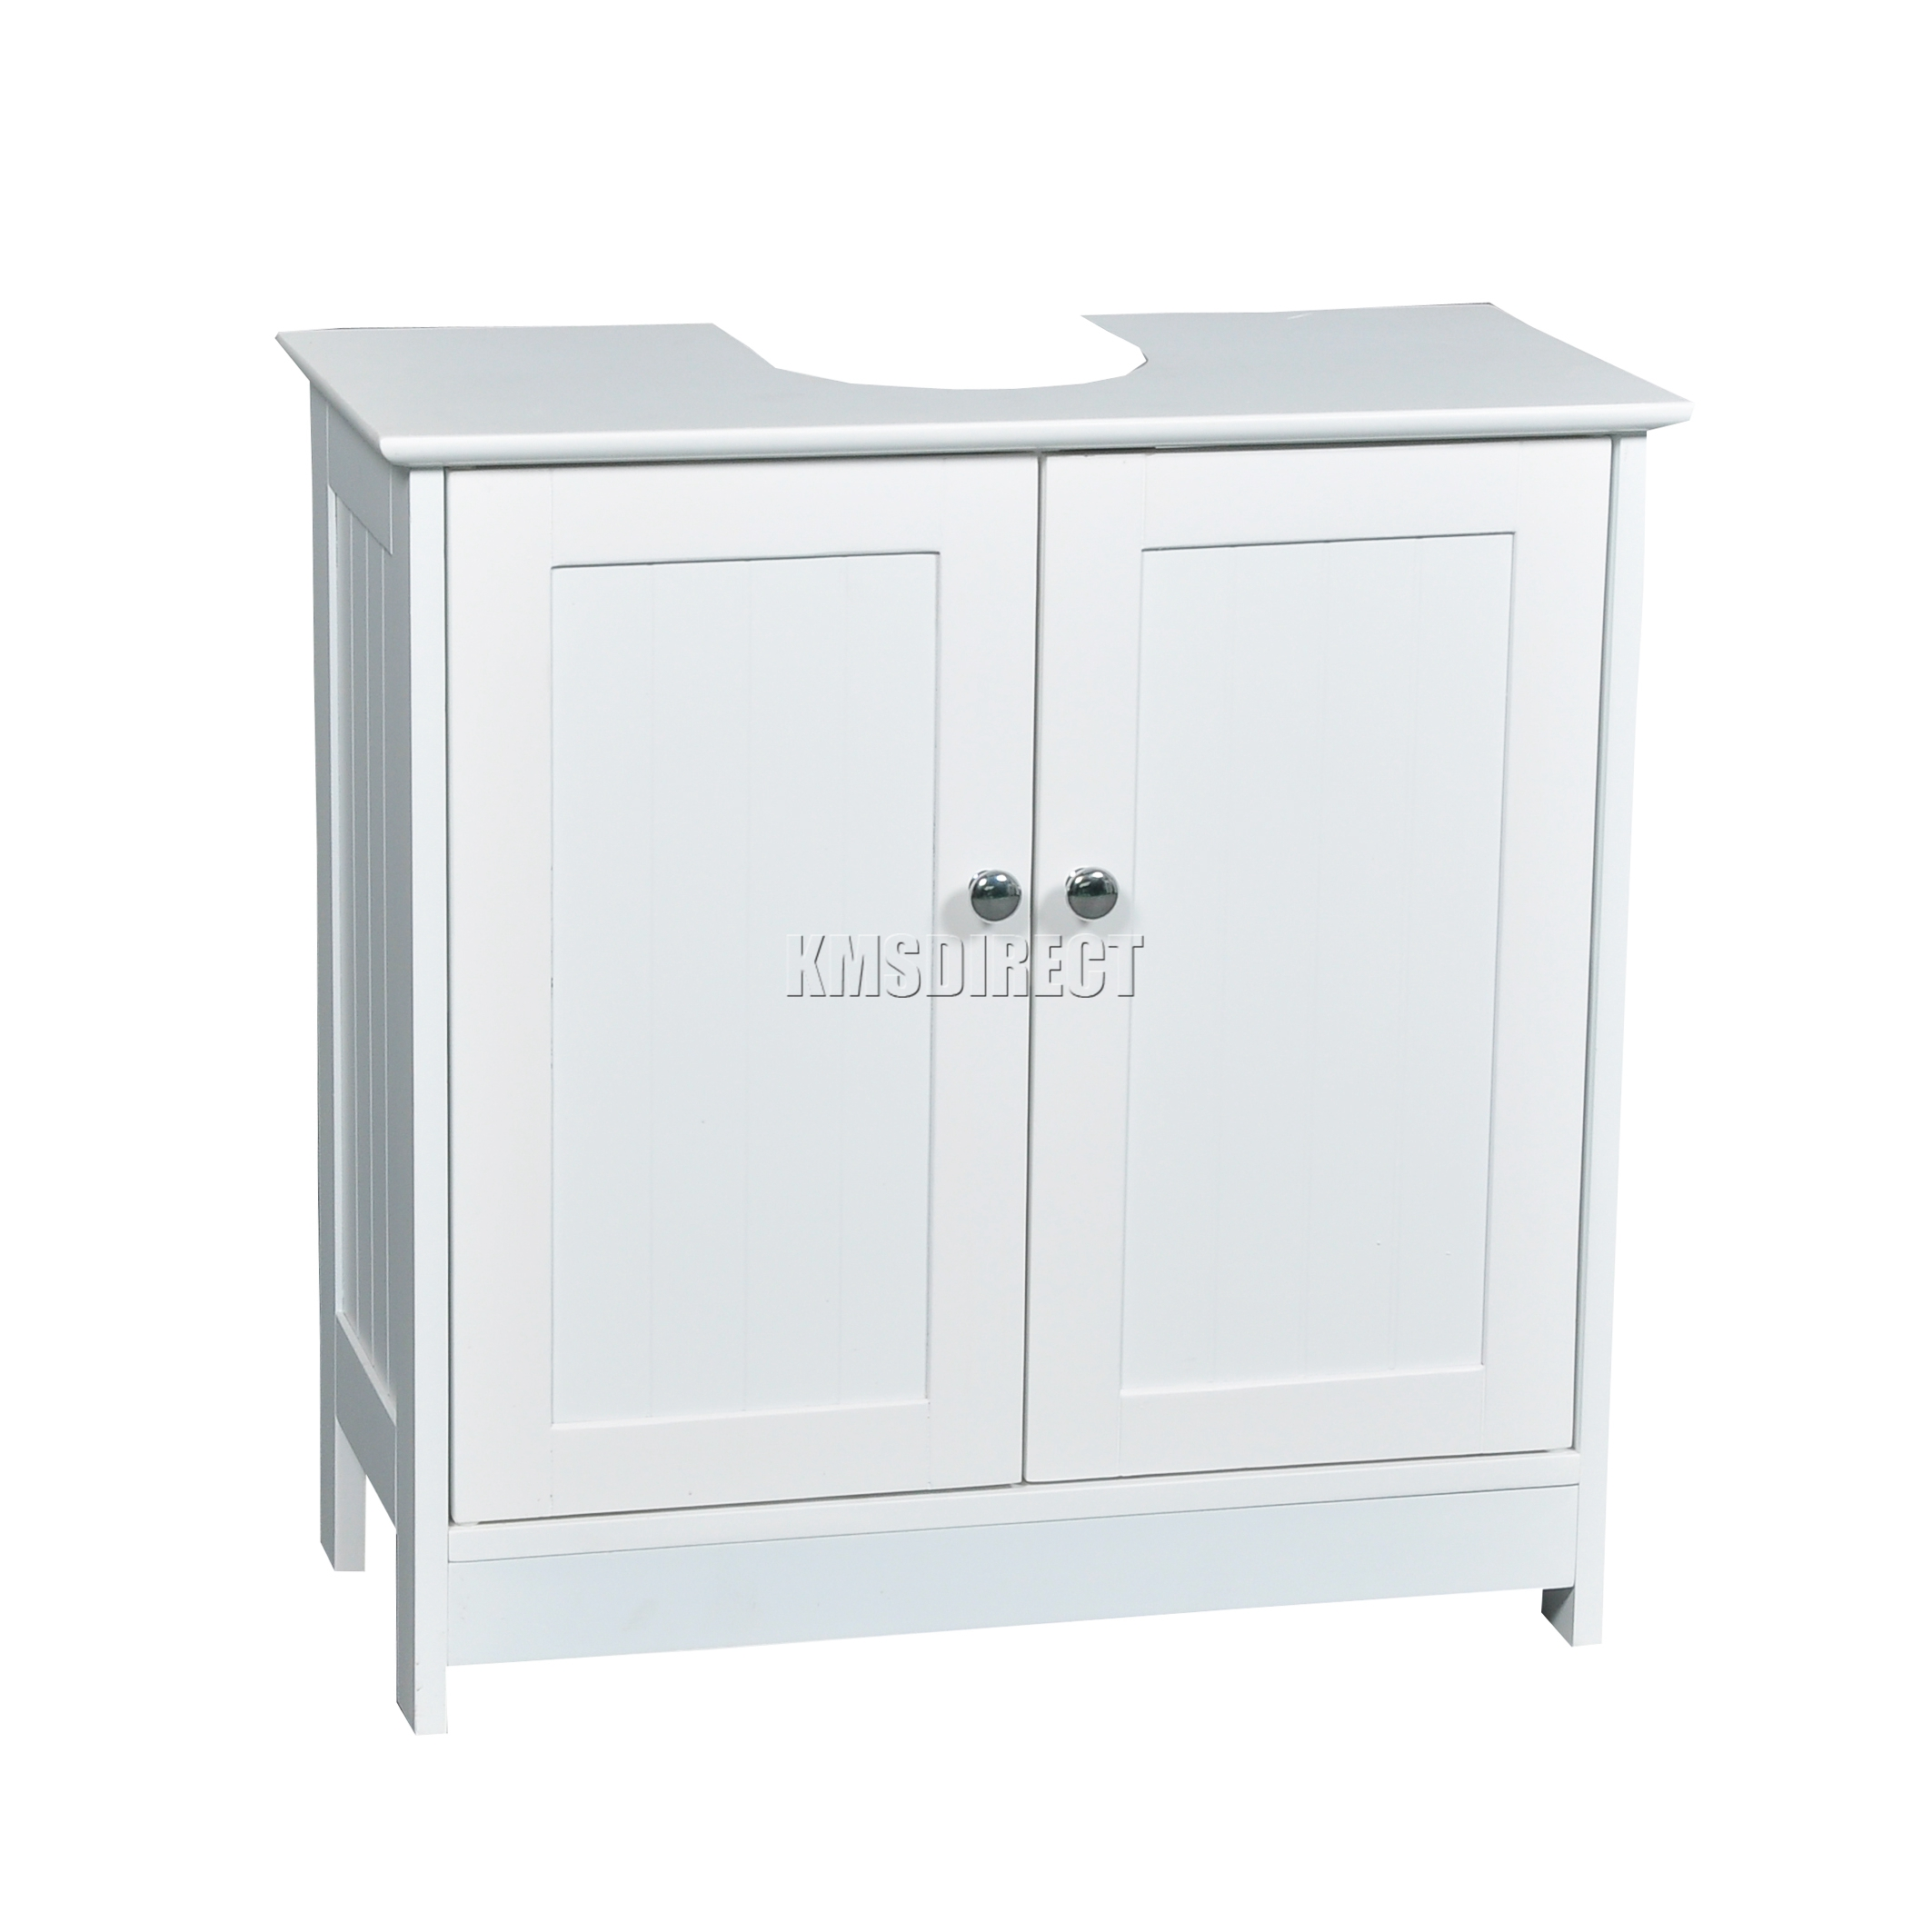 Foxhunter vanity unit wooden under sink wash basin - Under sink bathroom storage cabinet ...